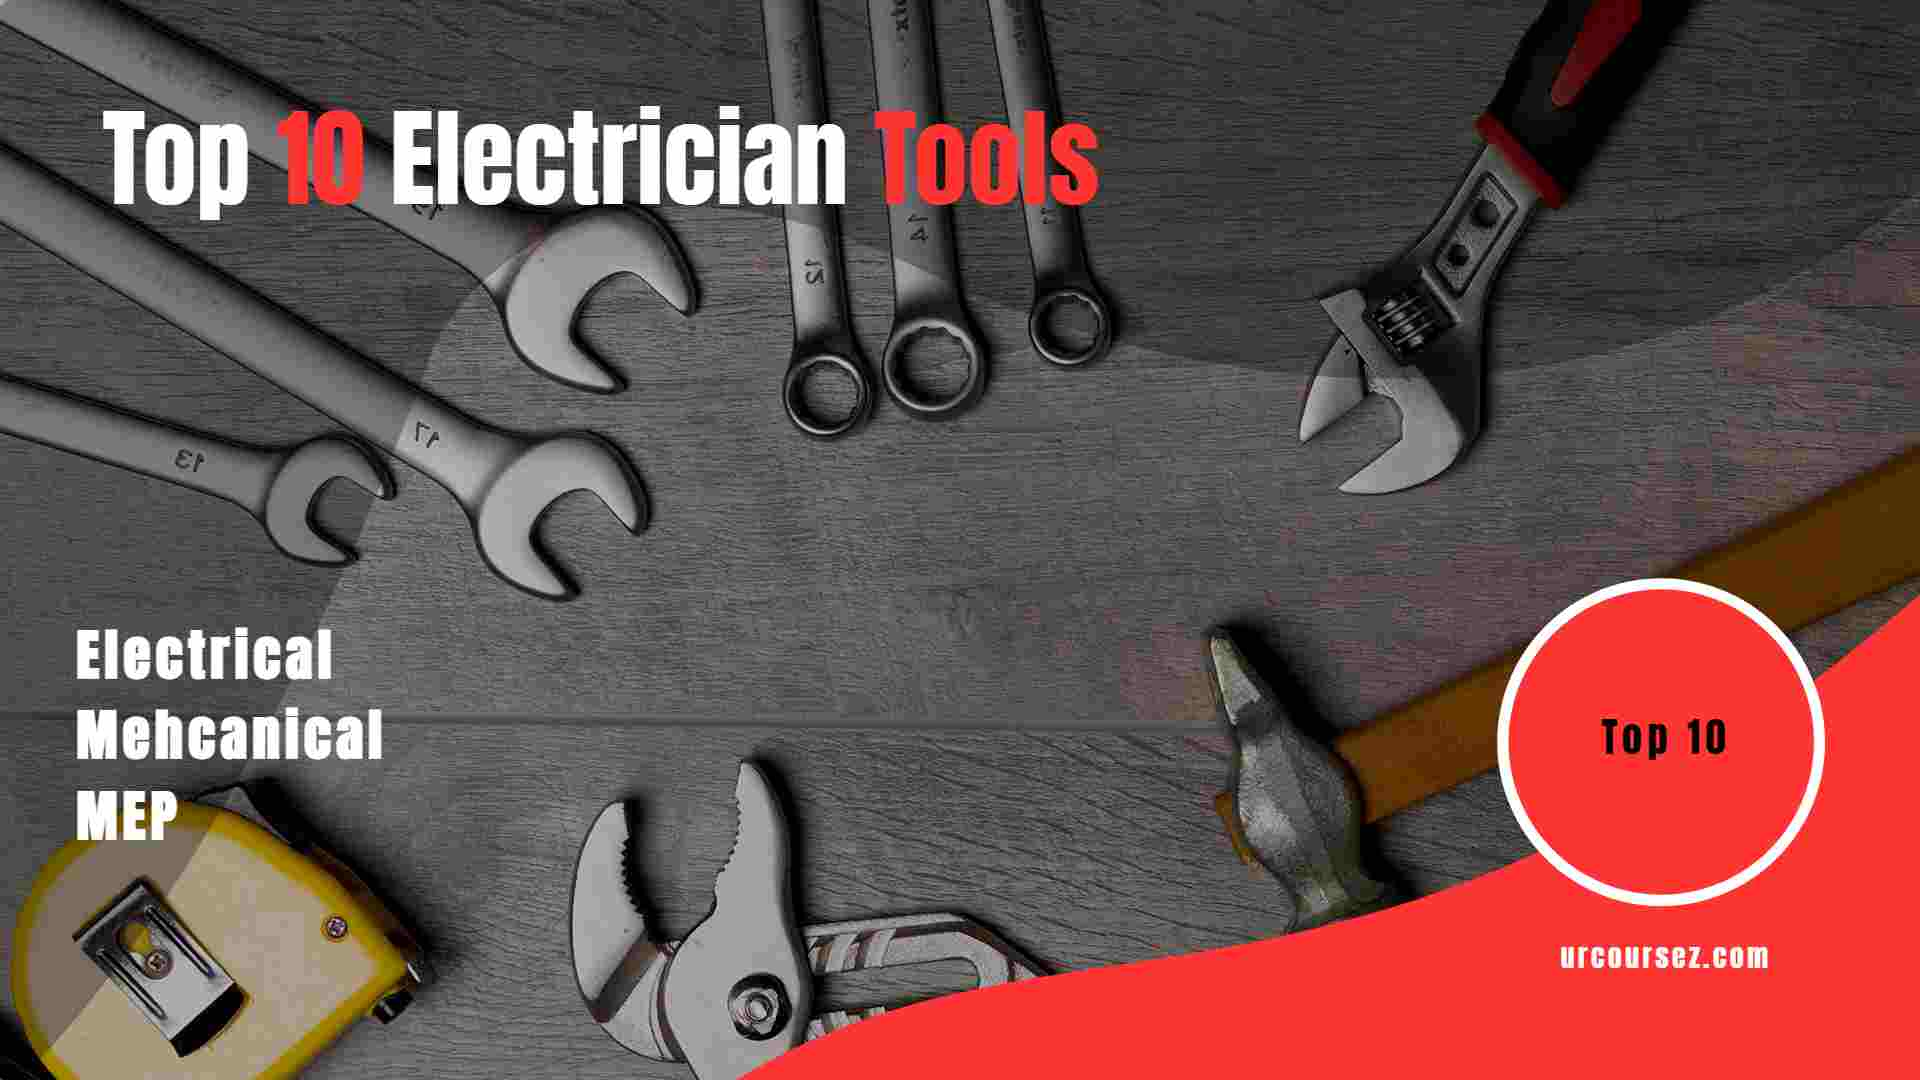 Top 10 Electrician tools used in infrastructure - engalaxy.com